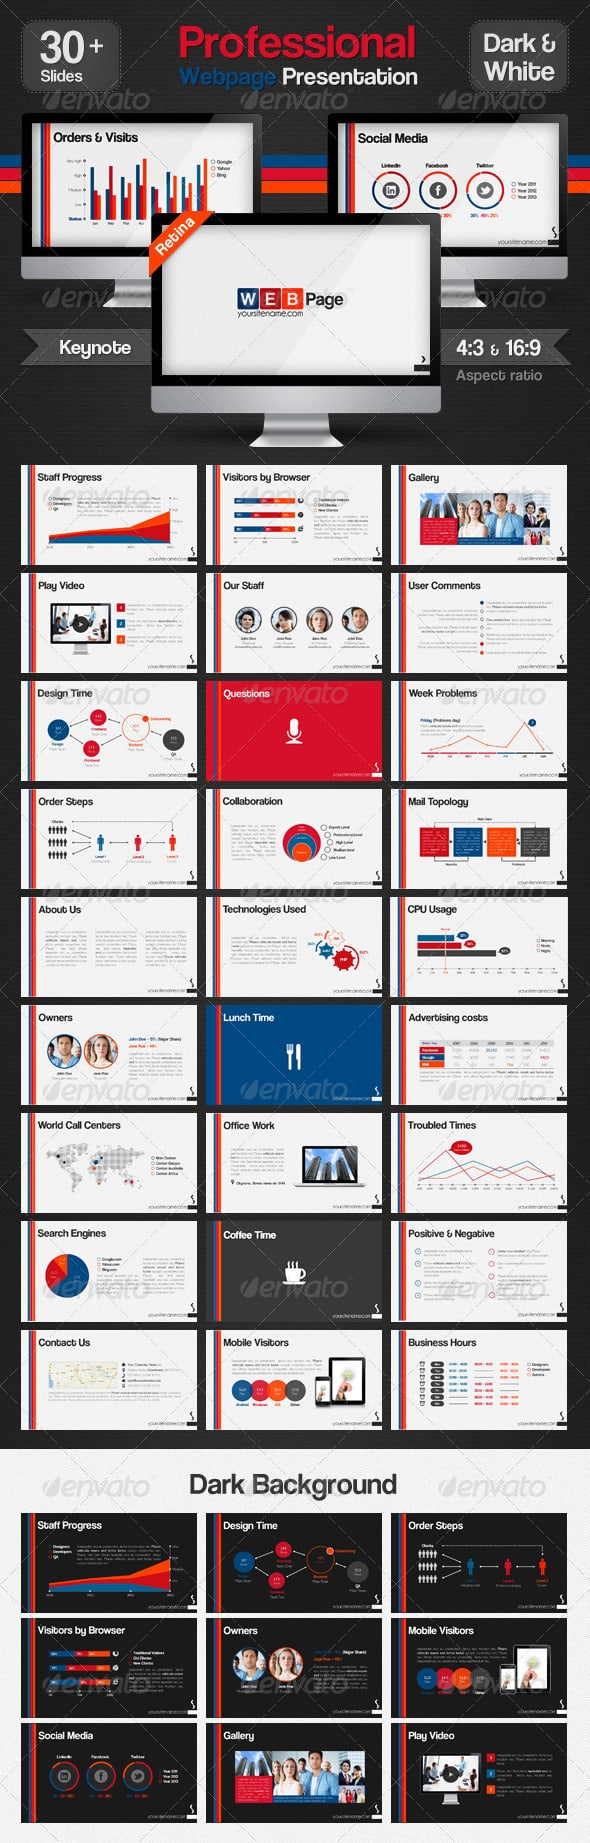 Professional-Web Page-Presentation-Keynote-template